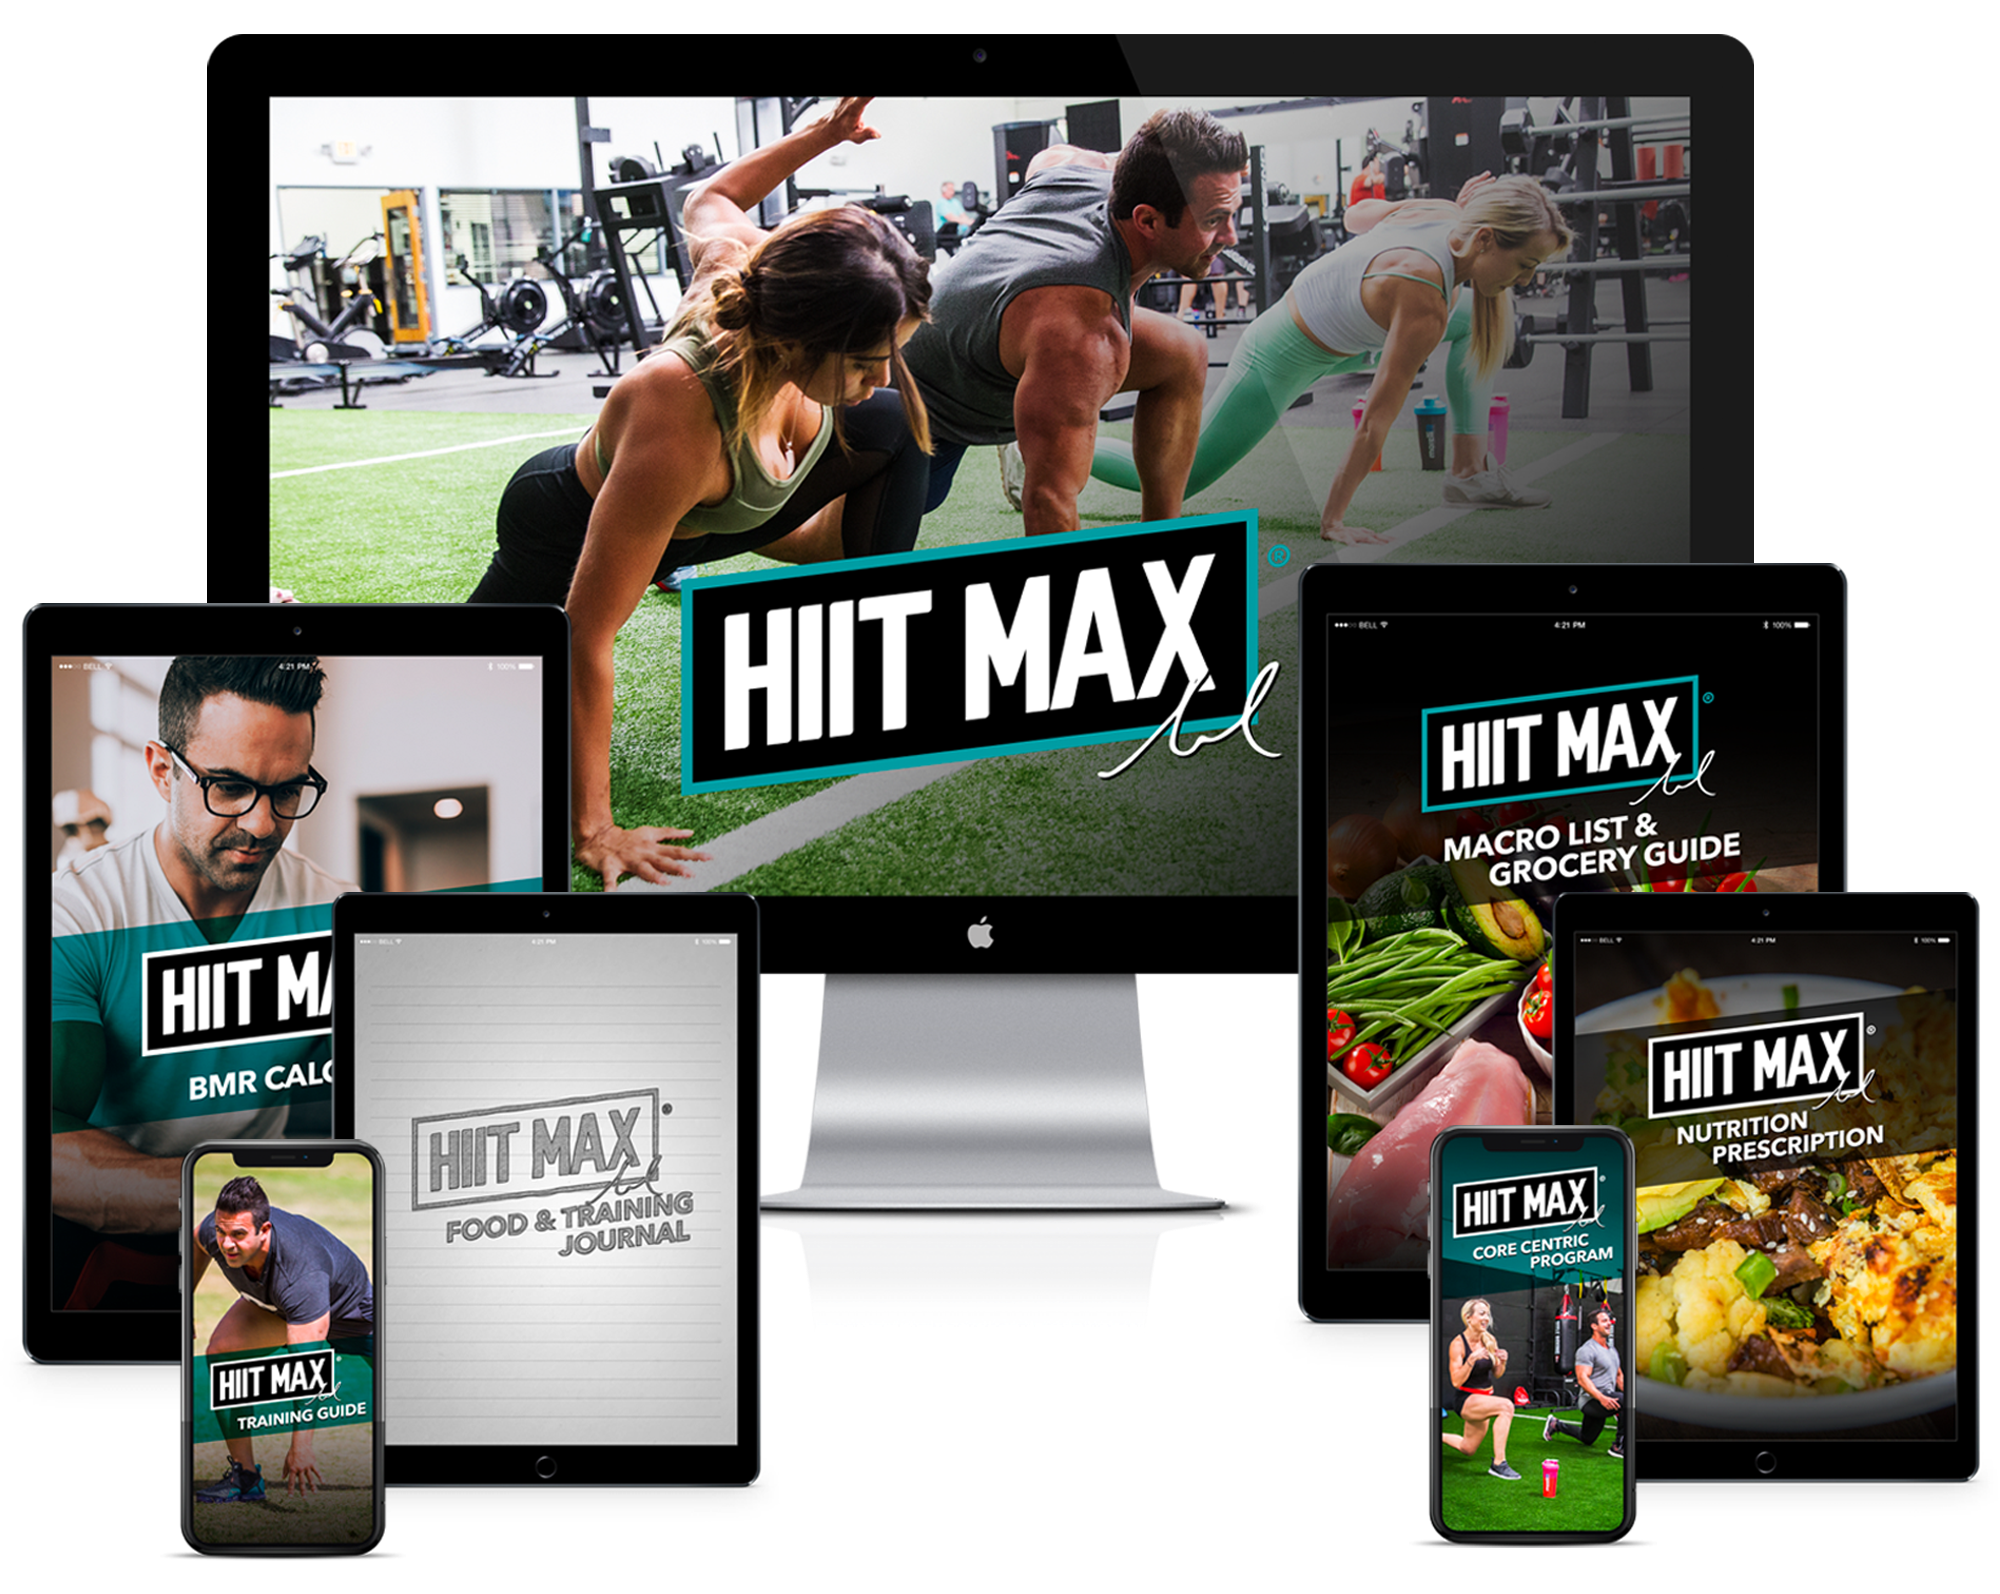 HIIT MAX ™ - MorelliFit - Cleanest Sports Supplements & Nutrition on Earth